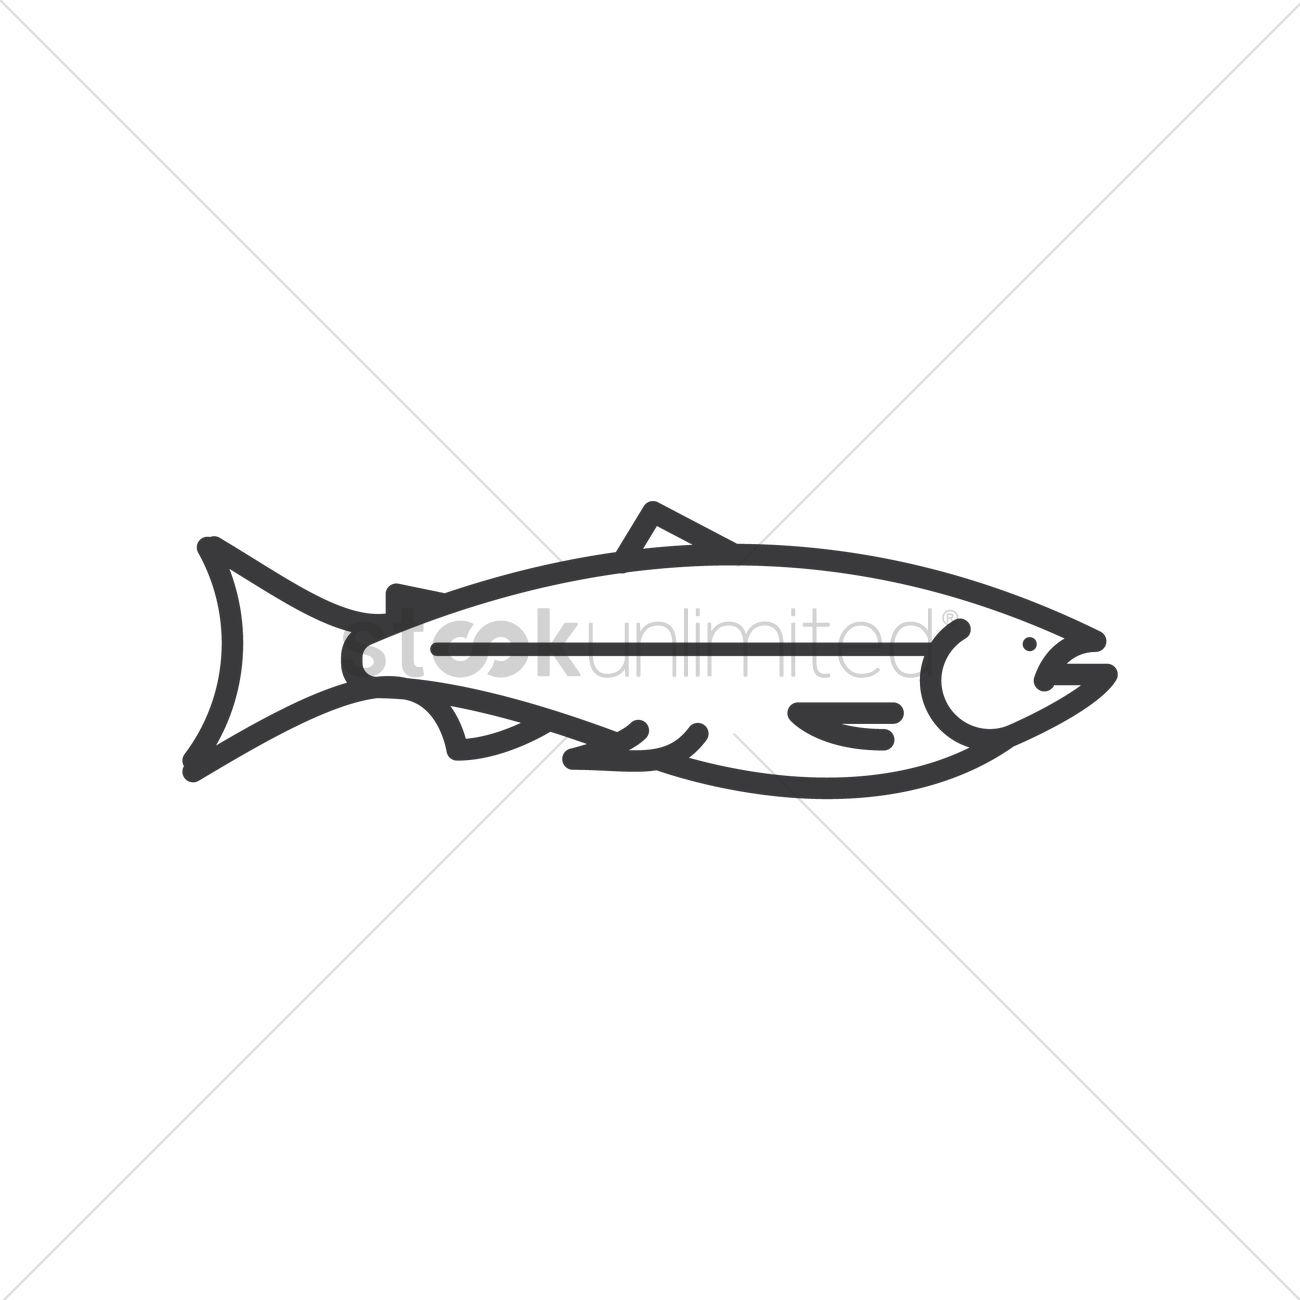 tuna fish vector image 1991884 stockunlimited tuna fish vector image 1991884